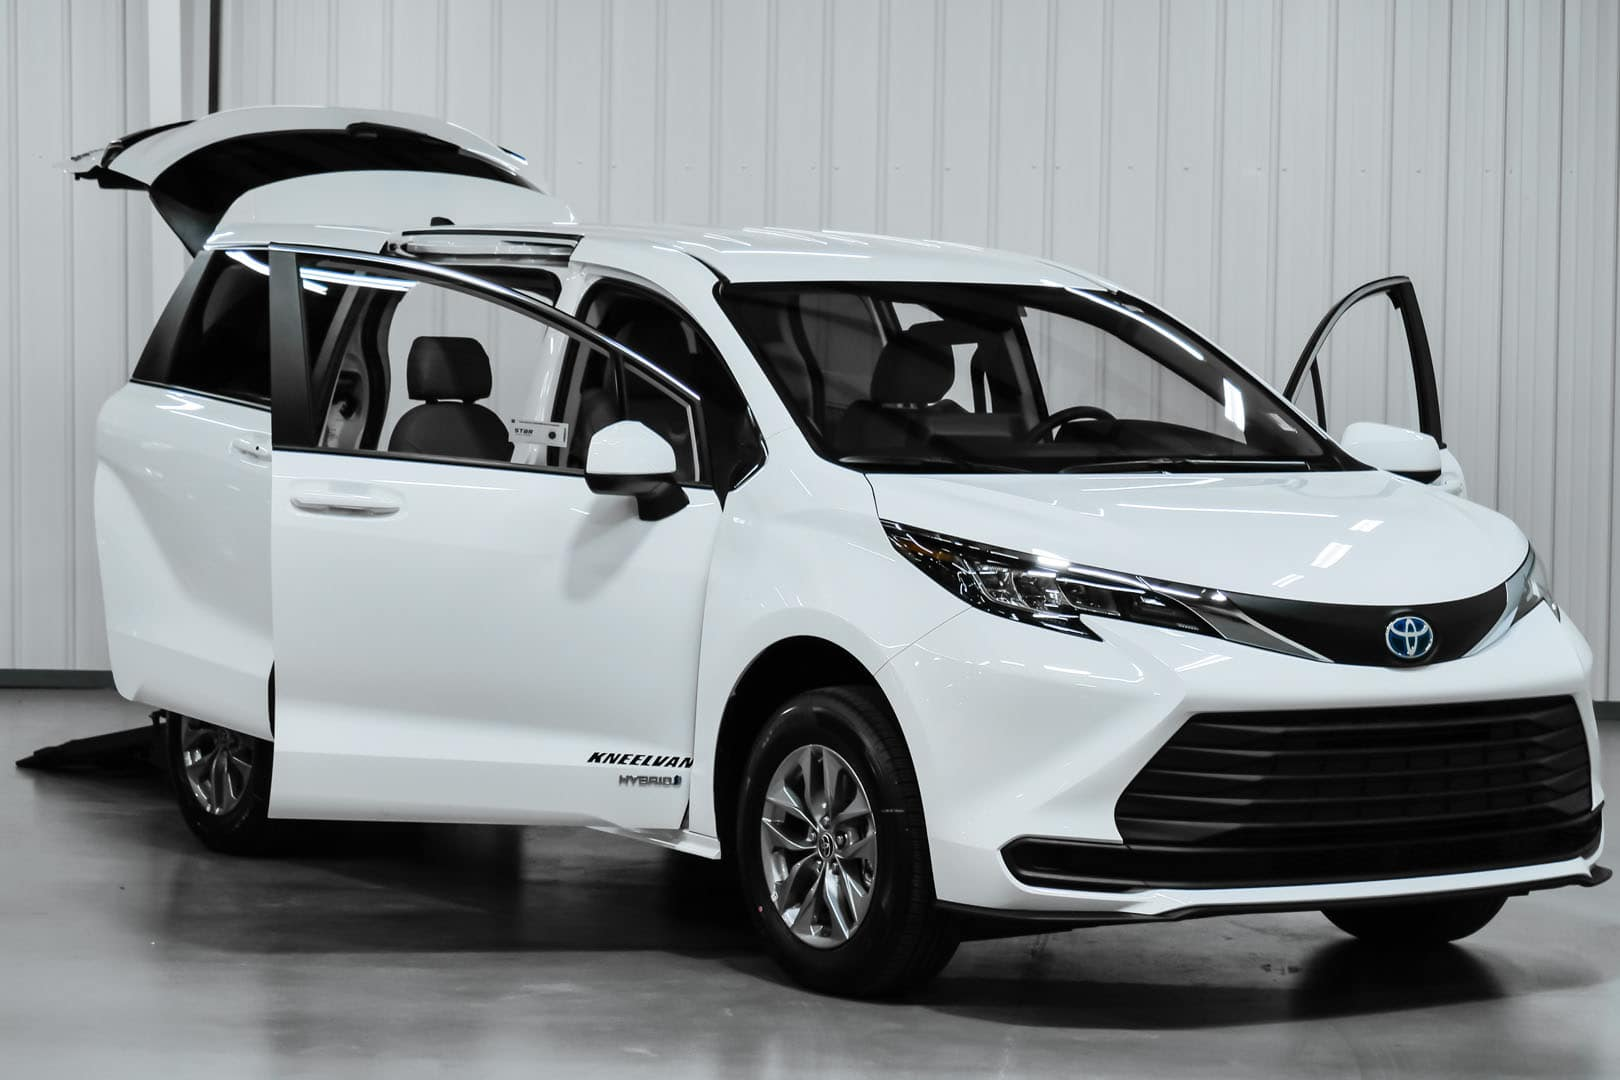 2021 white toyota sienna hybrid with open doors and trunk